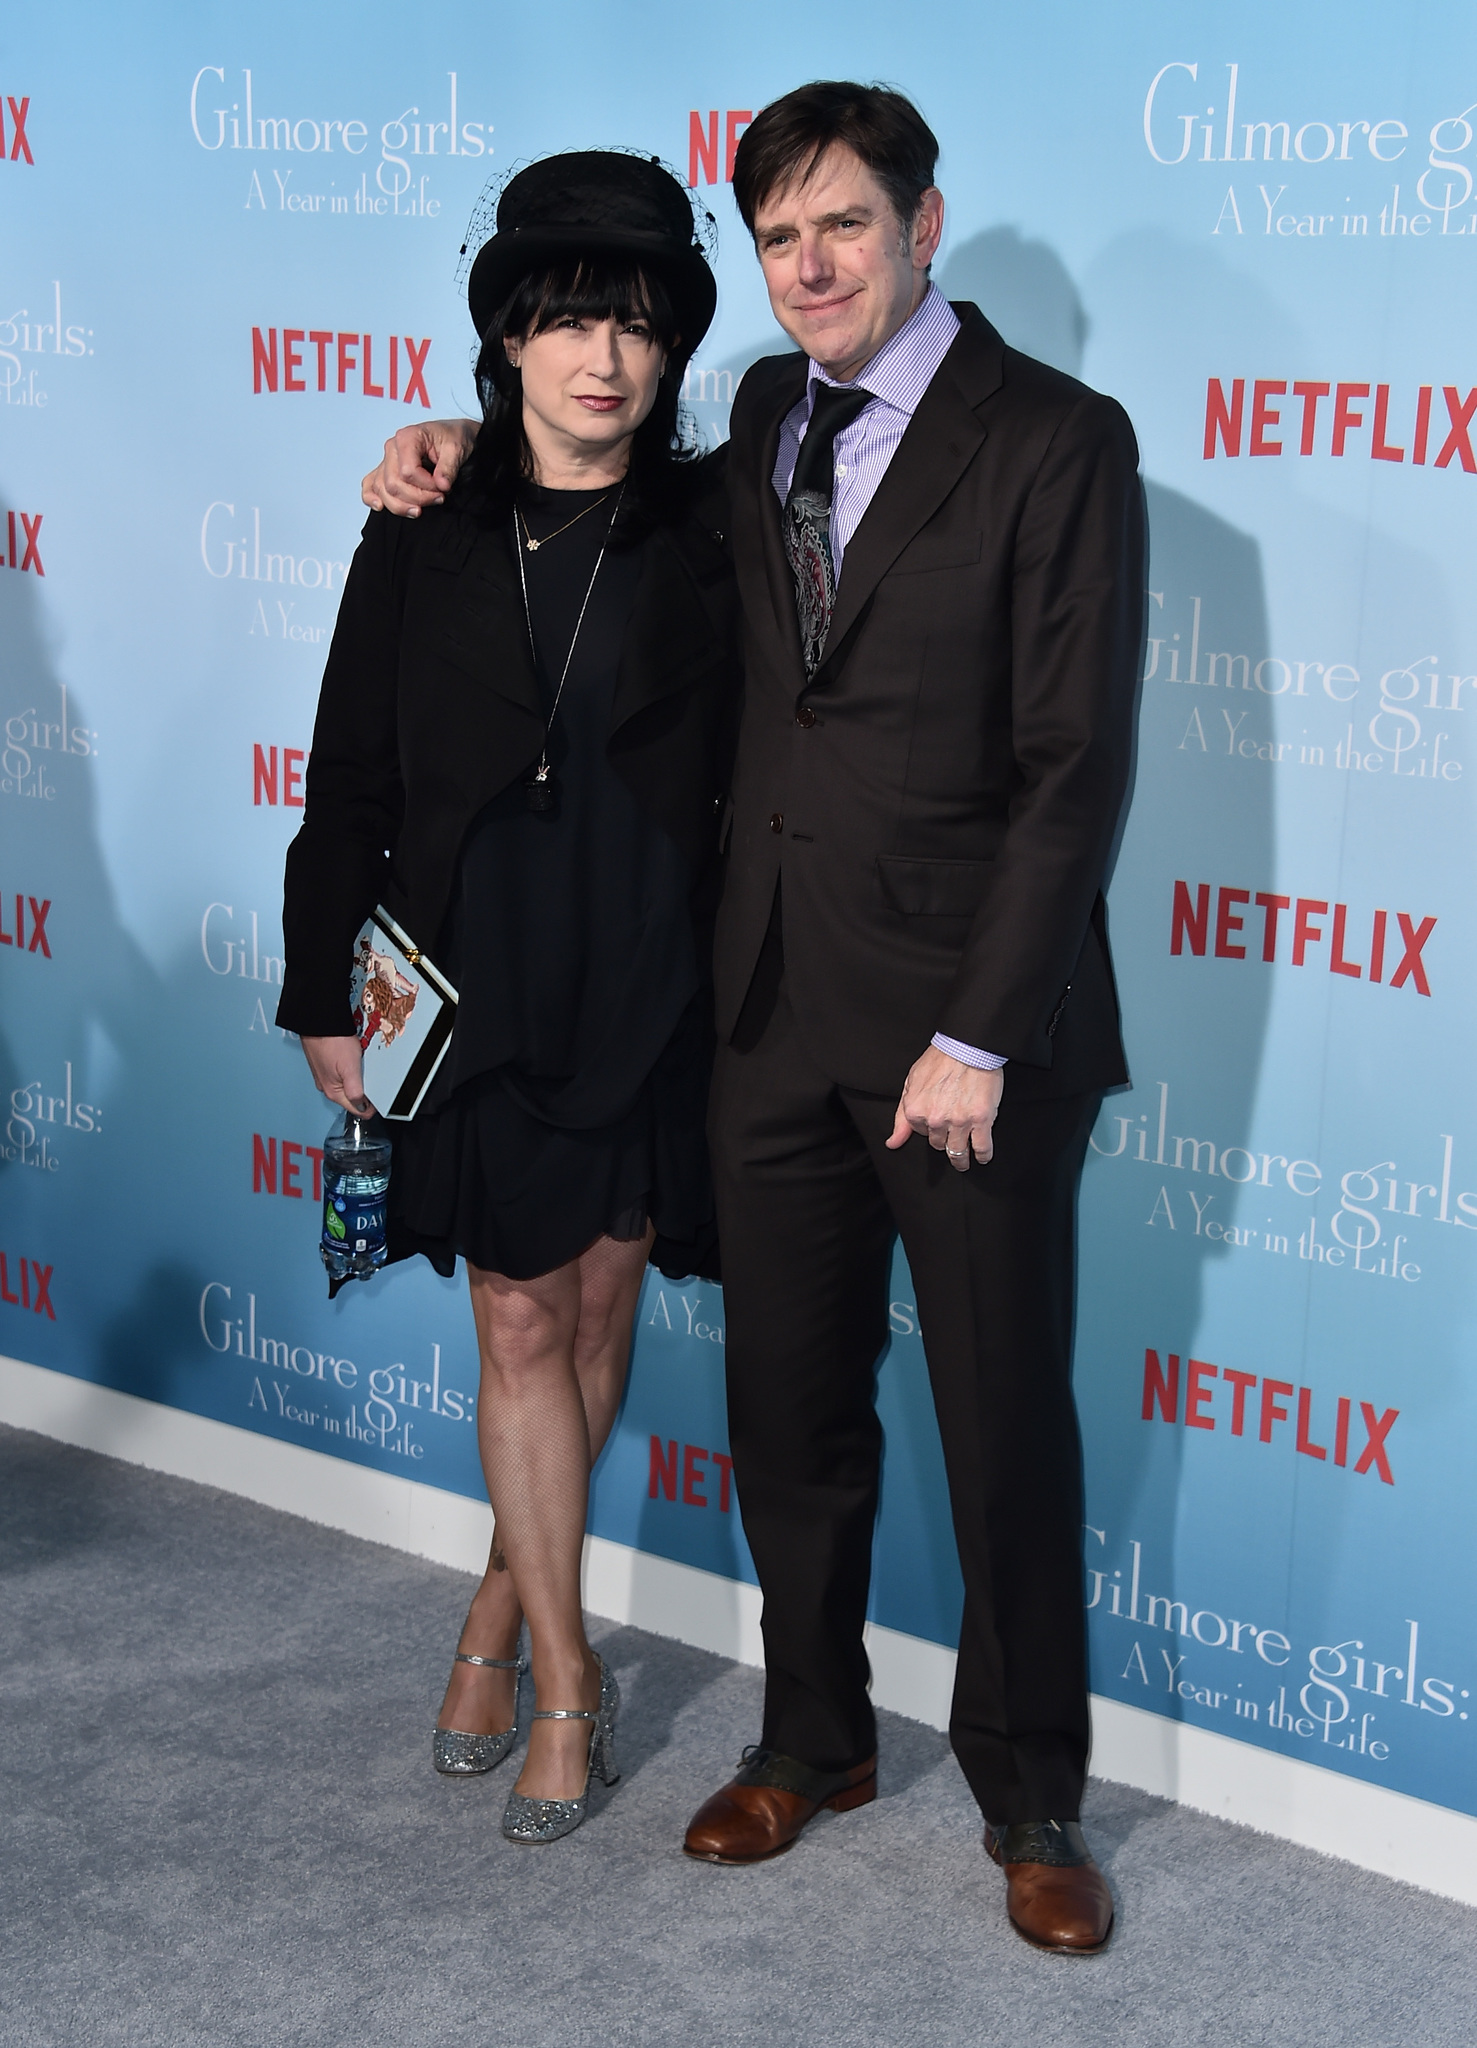 Daniel Palladino and Amy Sherman-Palladino at an event for Gilmore Girls: A Year in the Life (2016)